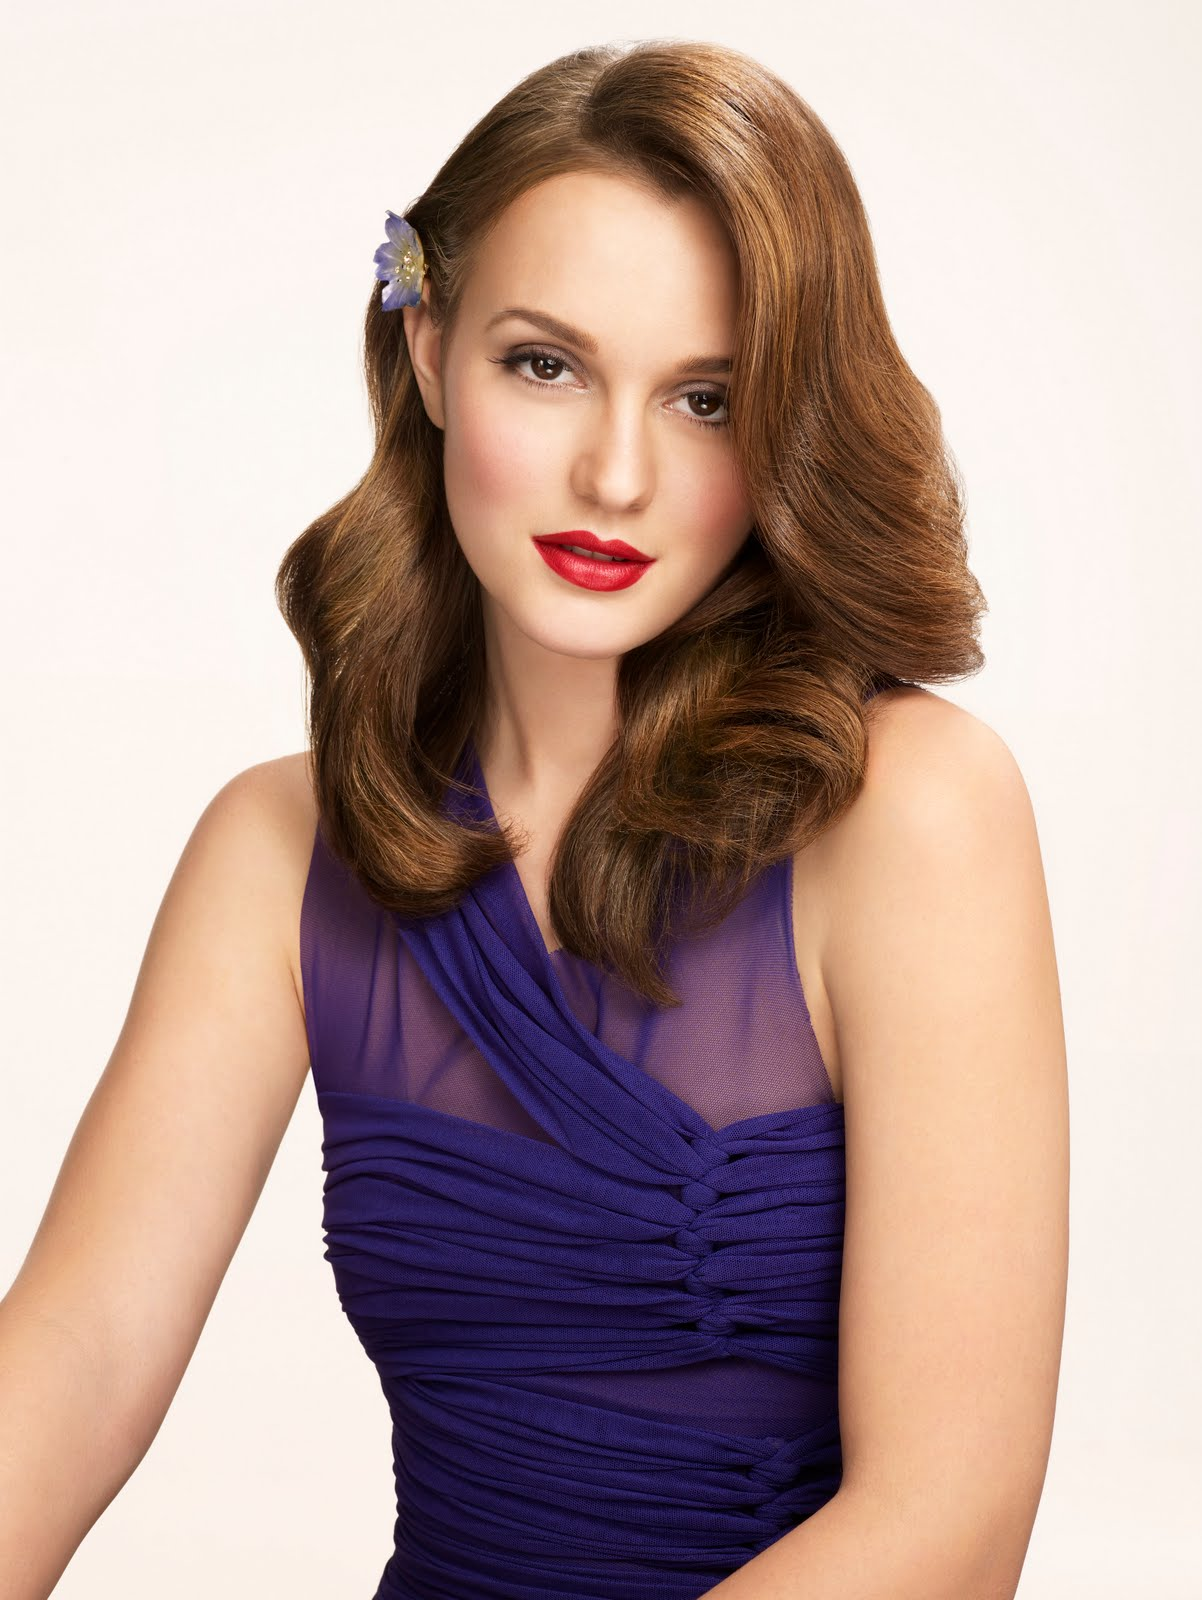 Leighton Meester - Photo Set